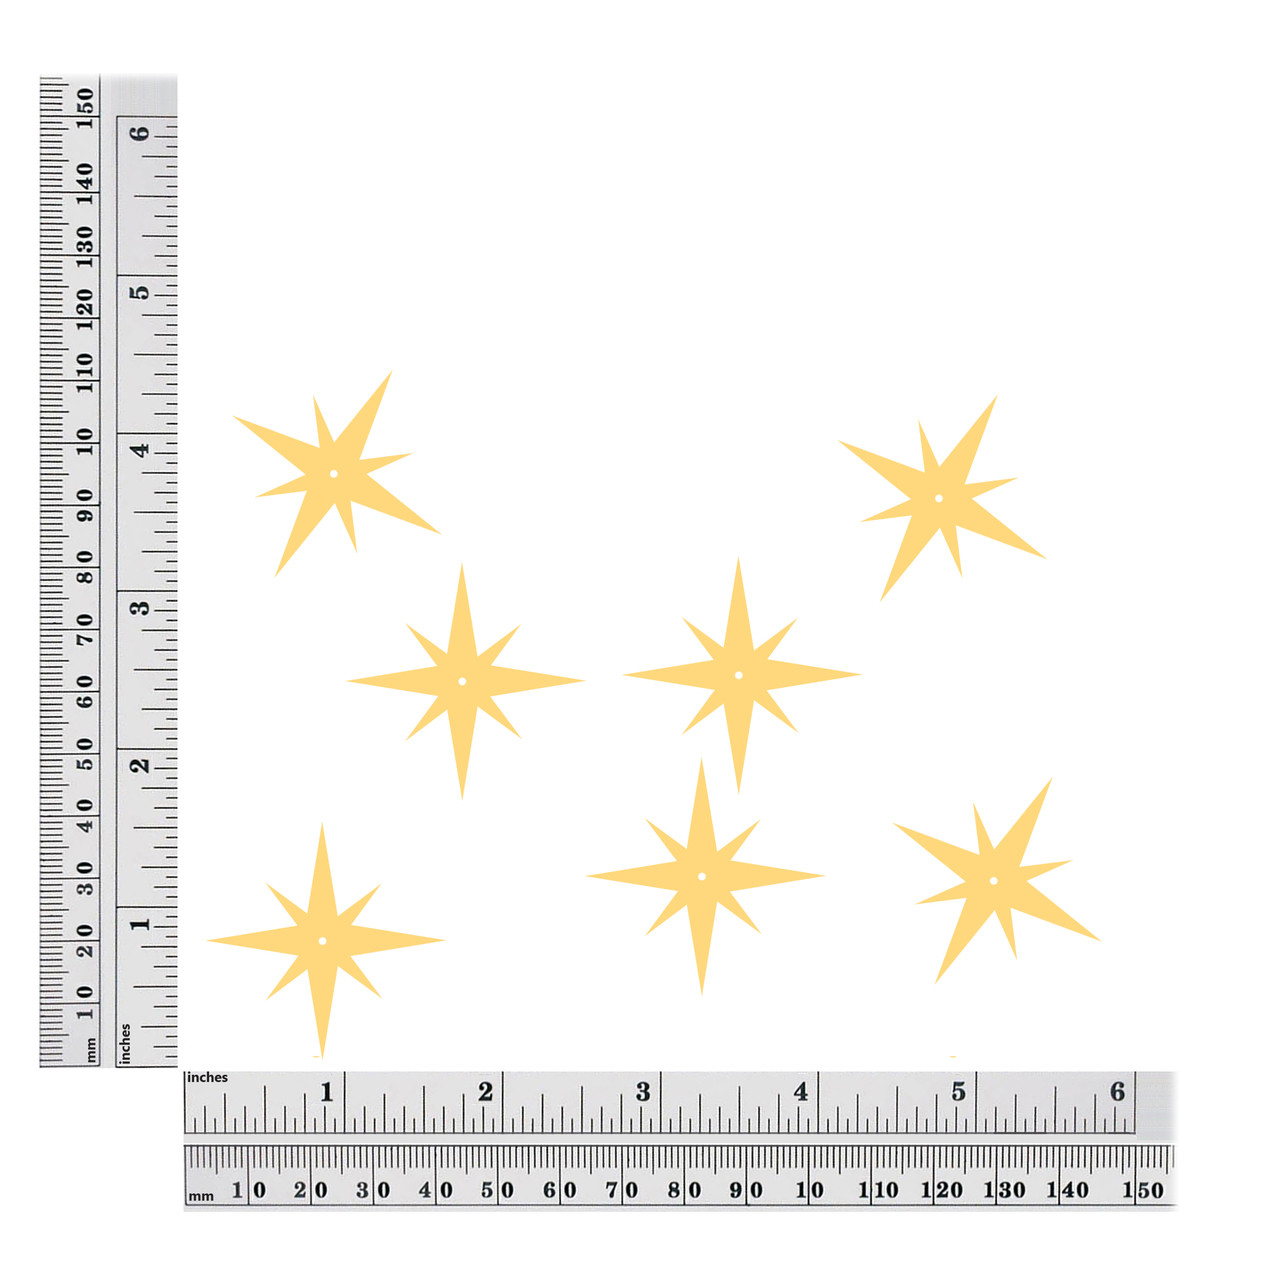 North Star sequins size chart